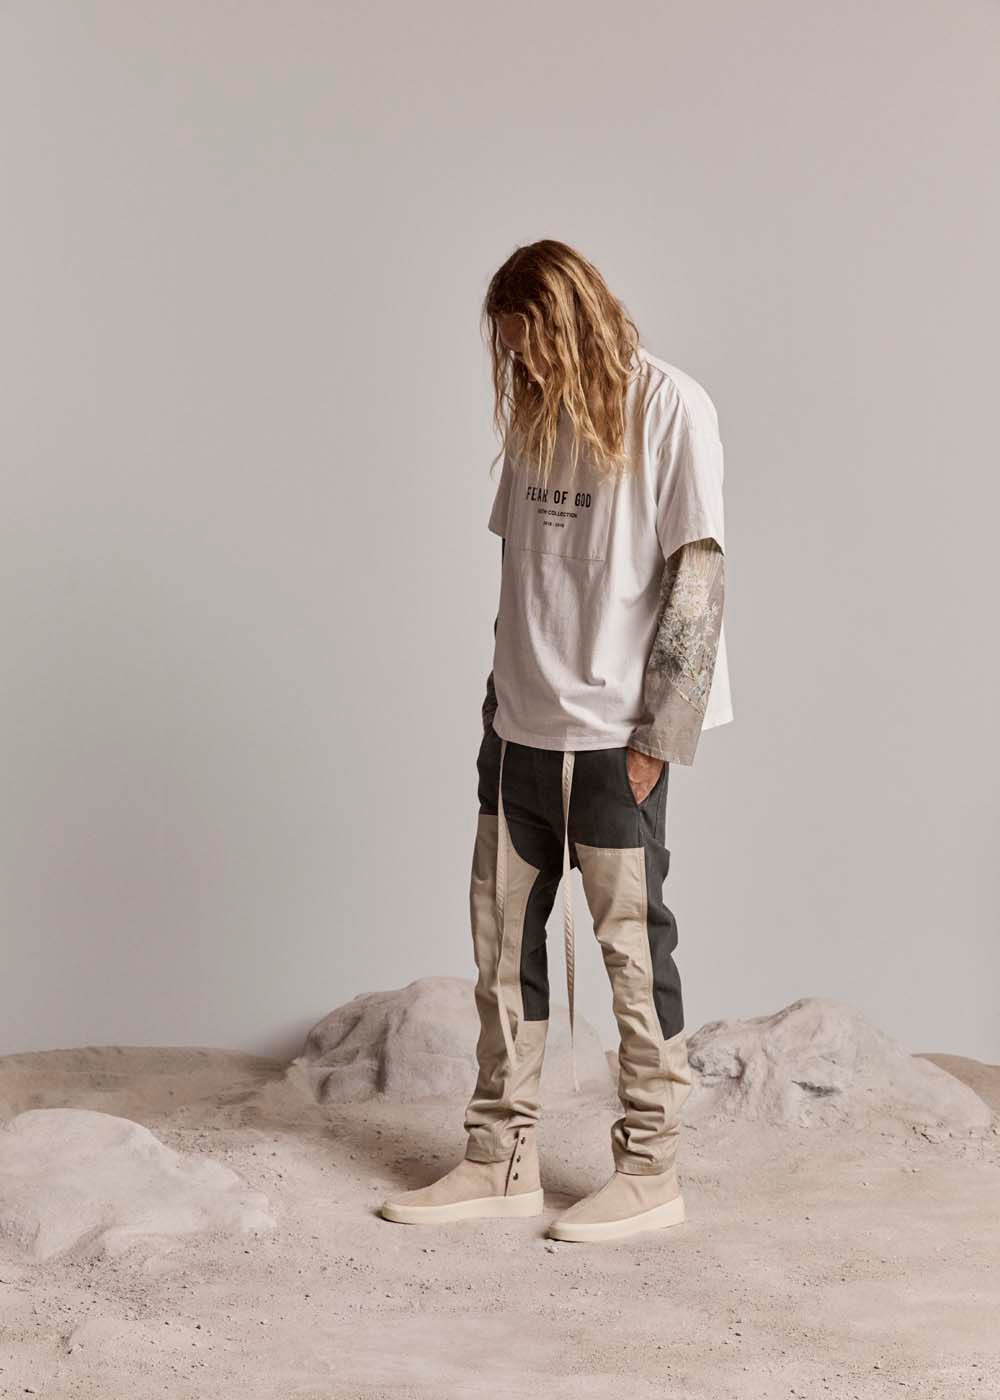 https_%2F%2Fhypebeast.com%2Fimage%2F2018%2F09%2Ffear-of-god-6-sixth-collection-jared-leto-nike-53.jpg